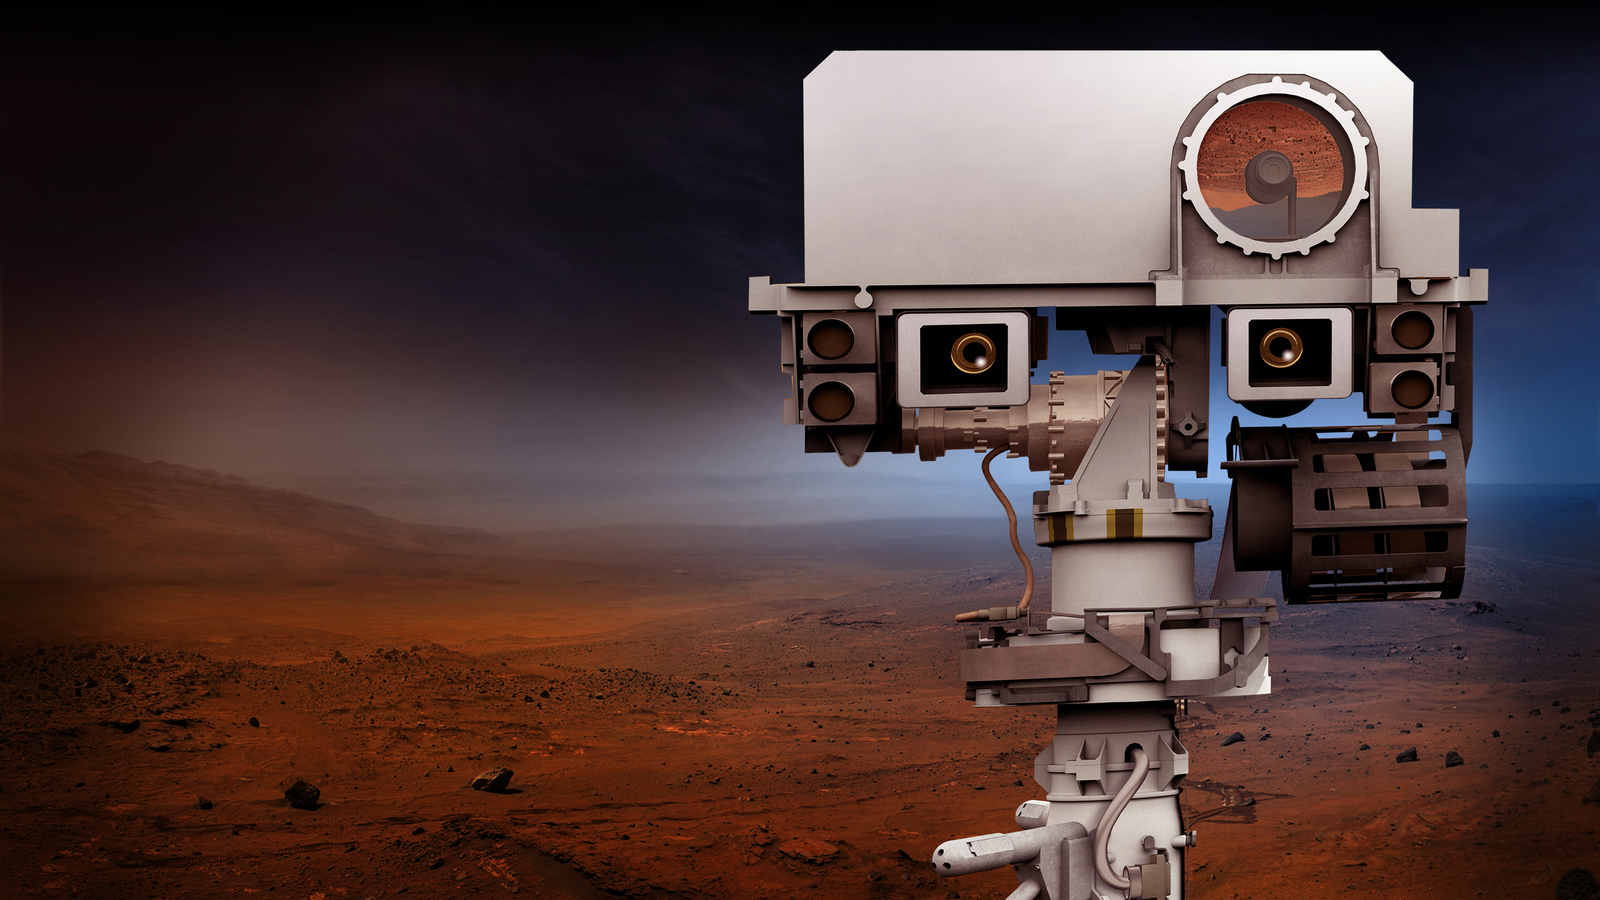 slide 4 - Artist's concept of the Mars 2020 rover